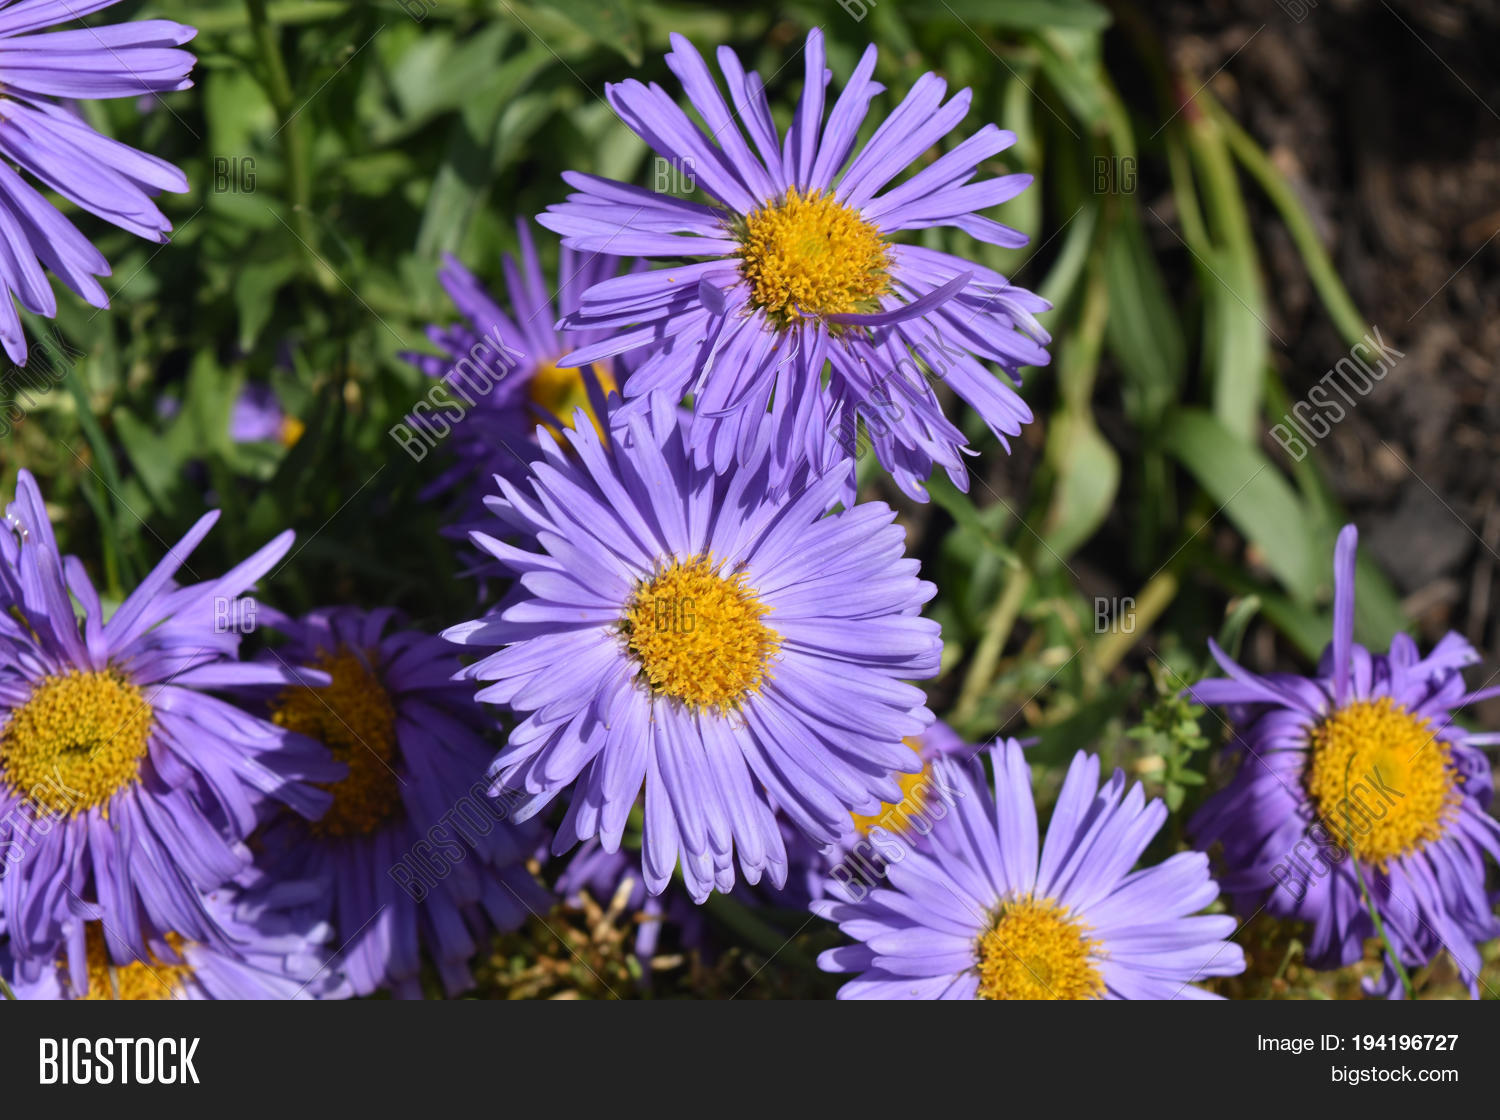 Gorgeous Bloomed Image Photo Free Trial Bigstock